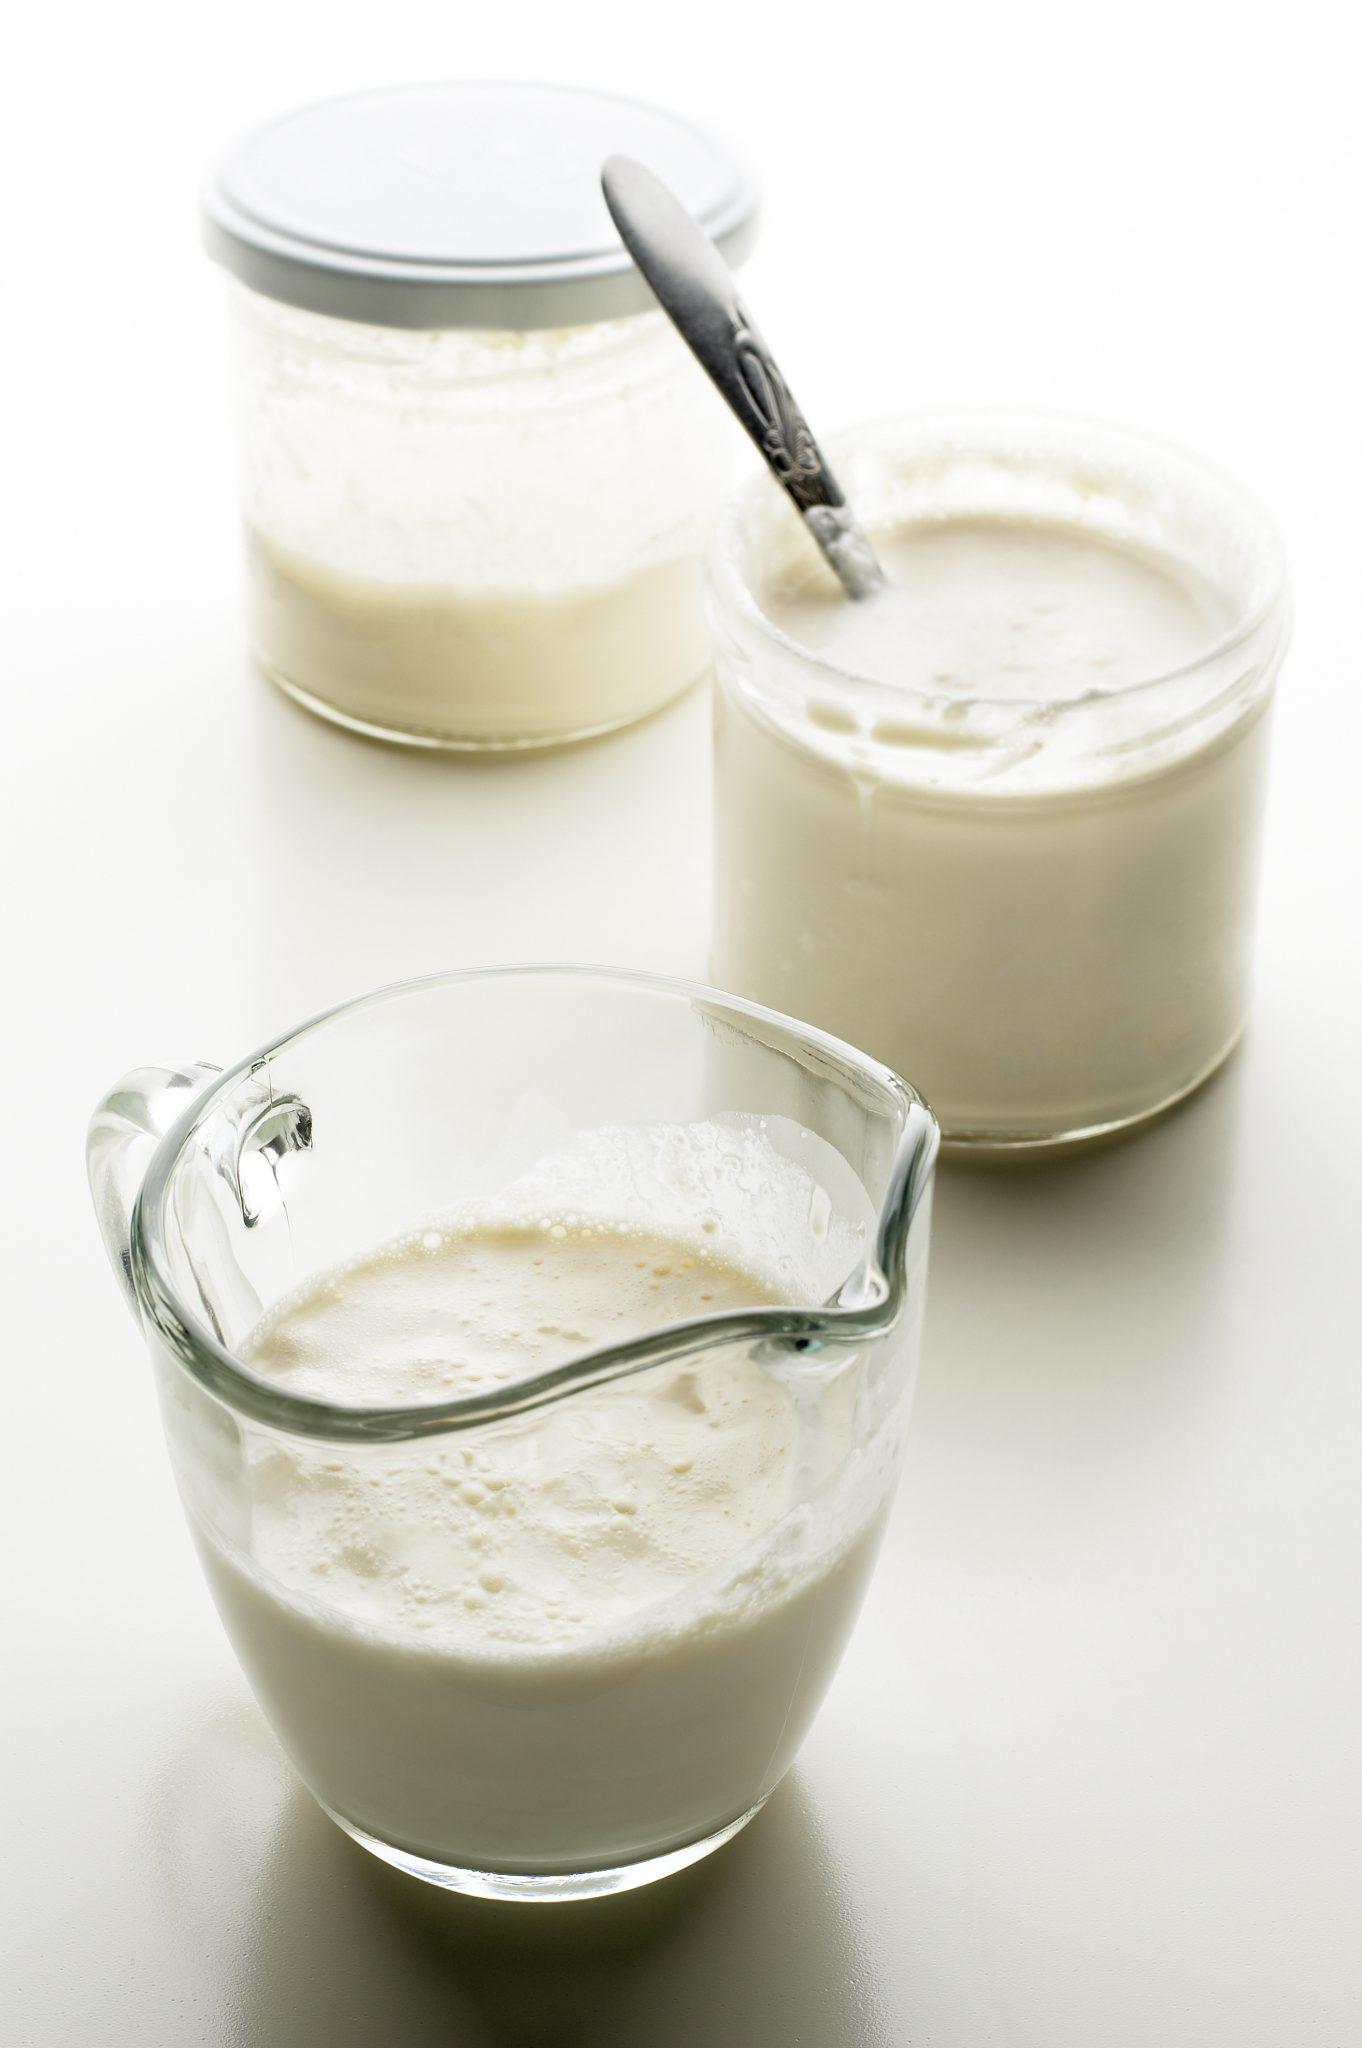 How long does heavy cream last? Can it go bad?